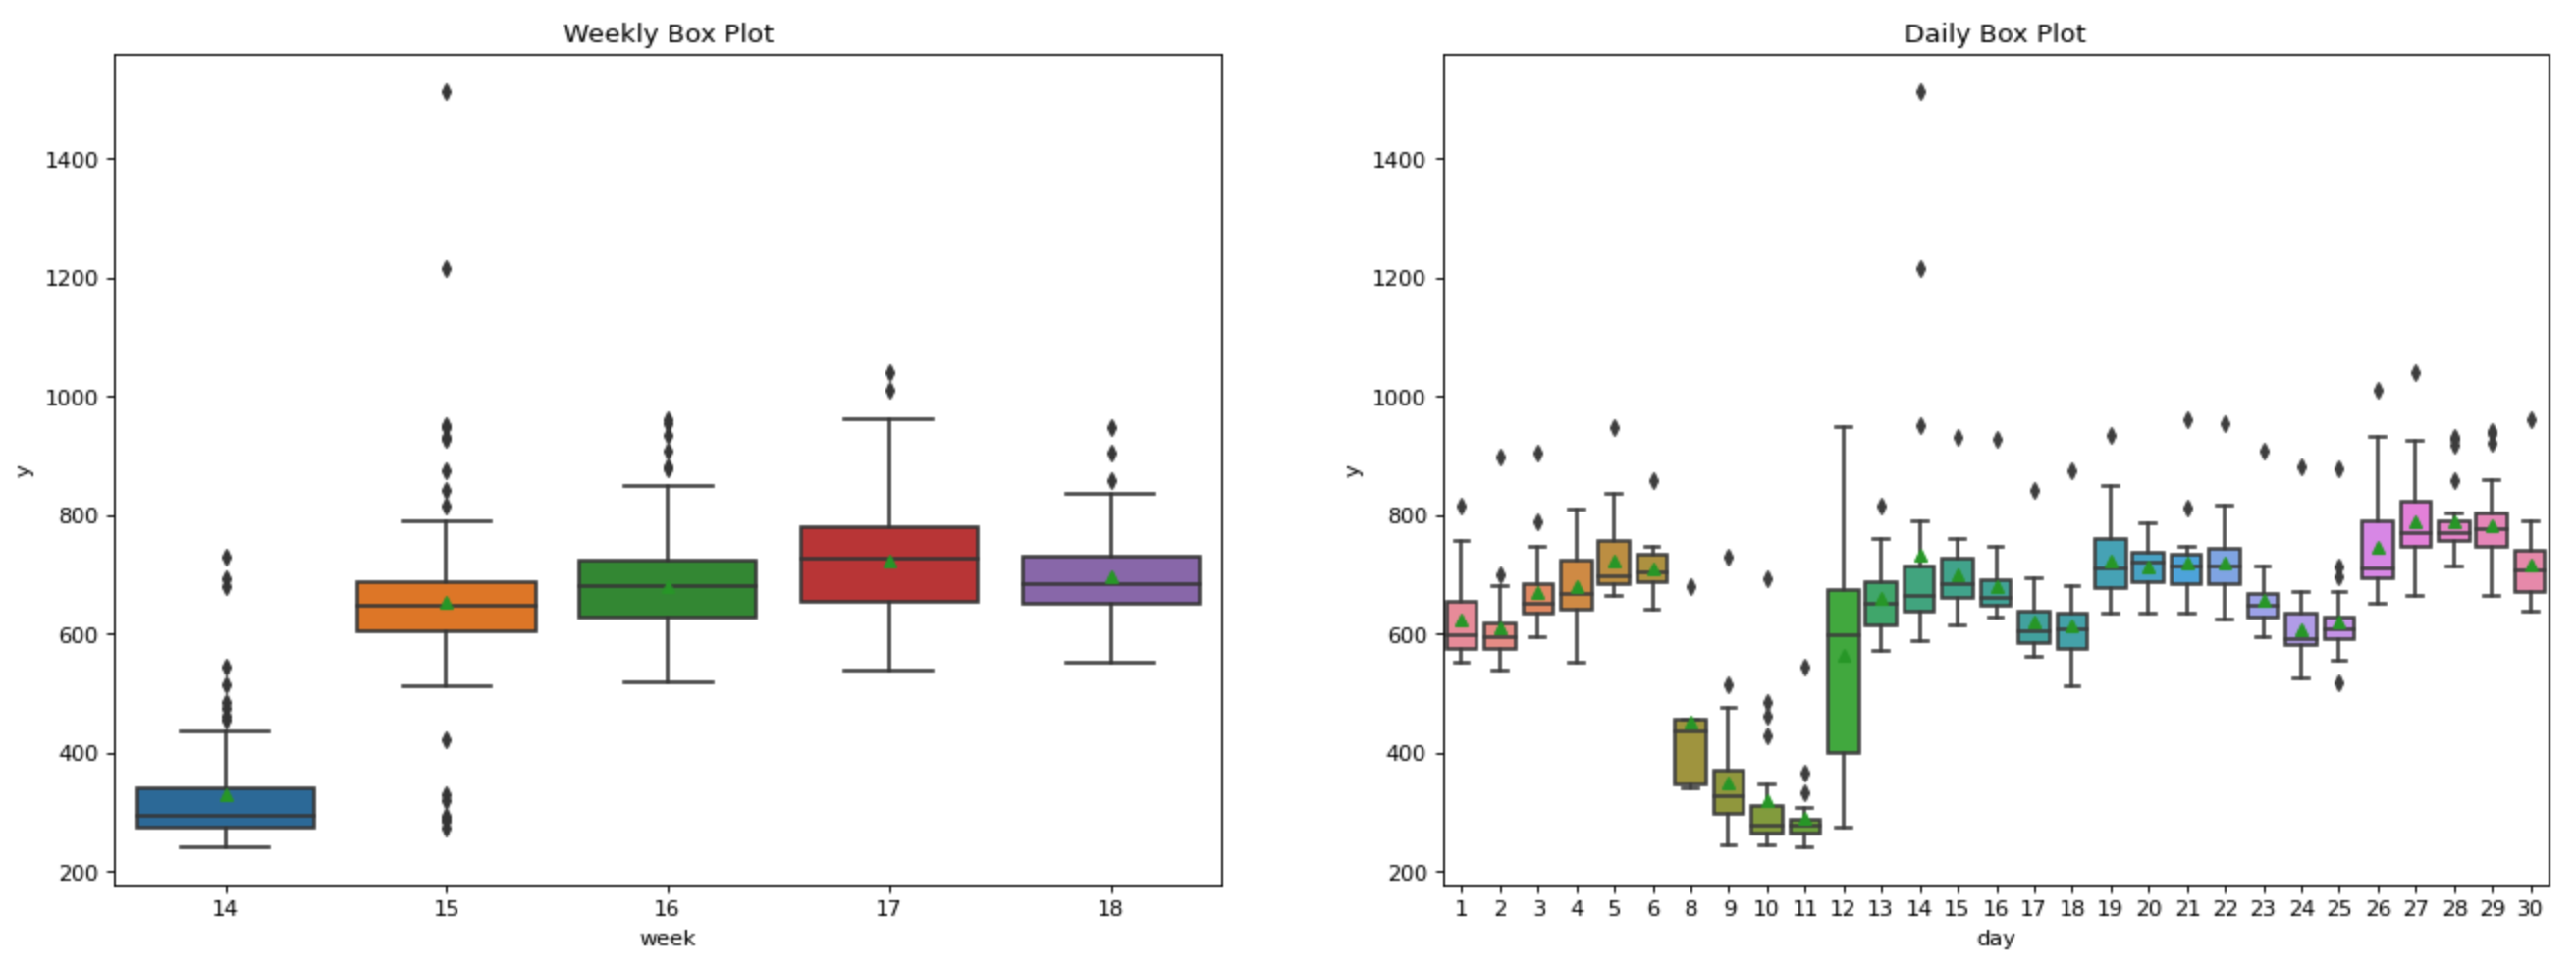 Weekly and daily boxplots with mean